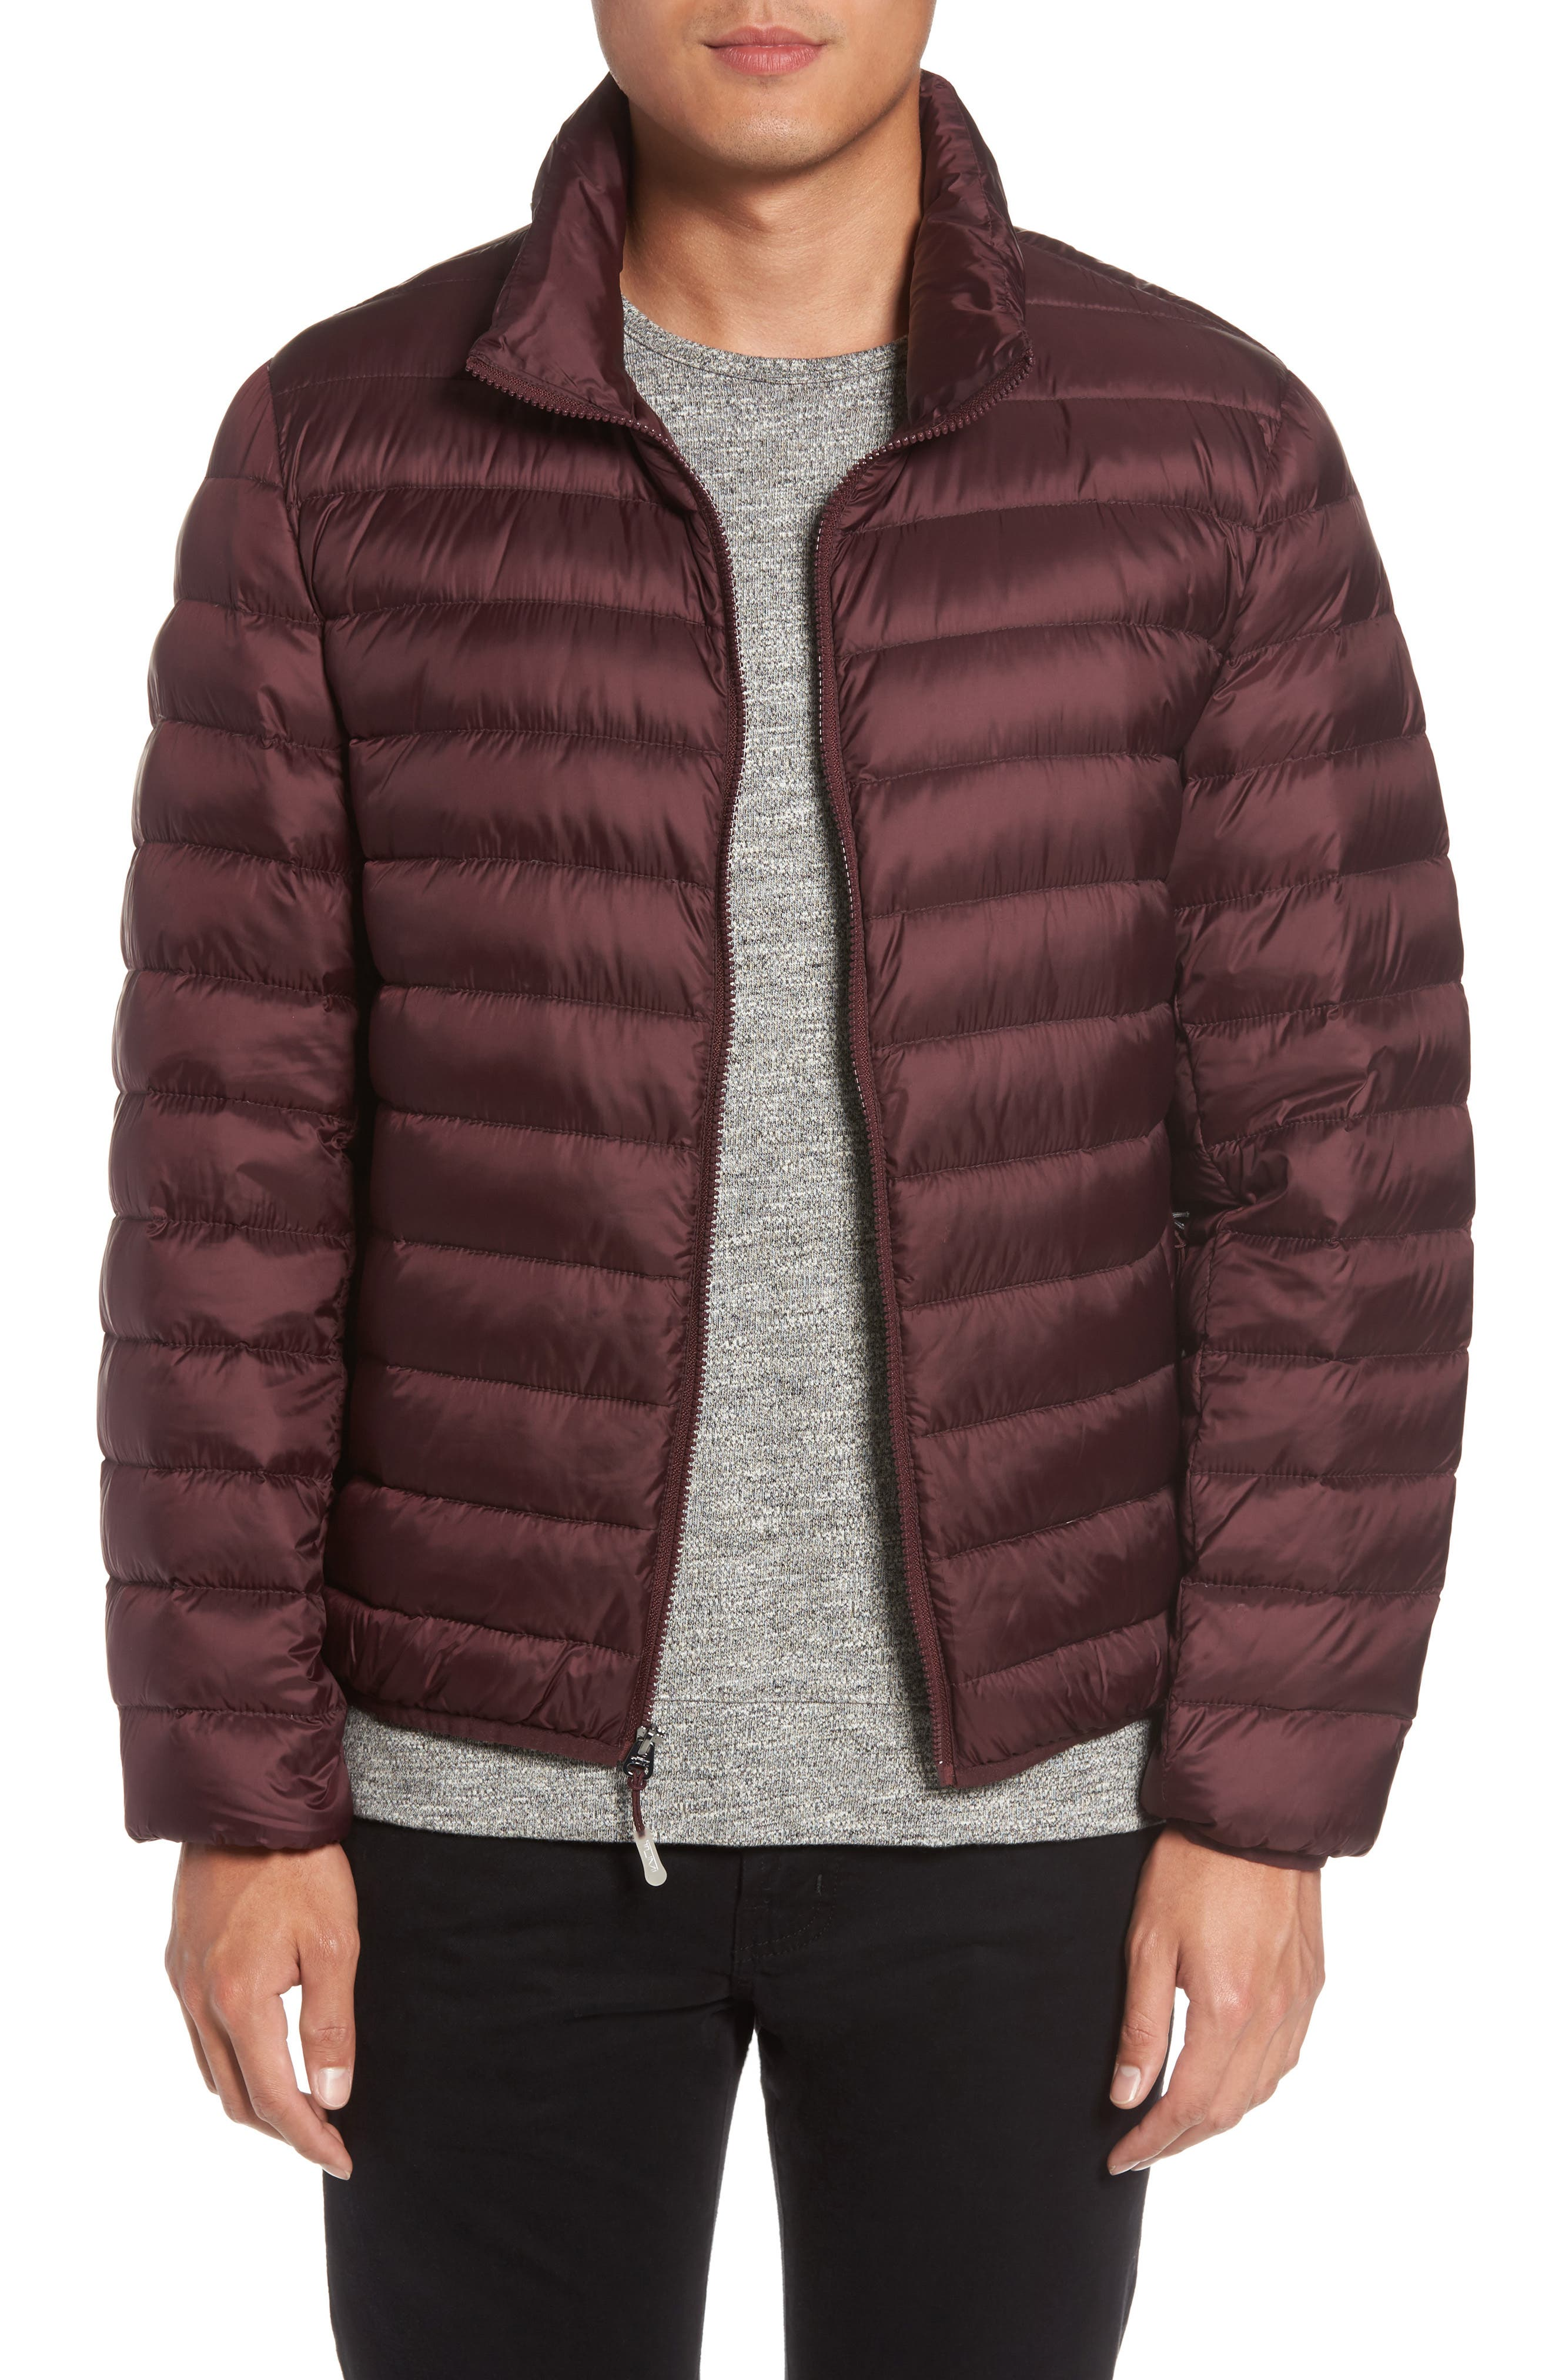 Main Image - Tumi'Pax' PackableQuilted Jacket